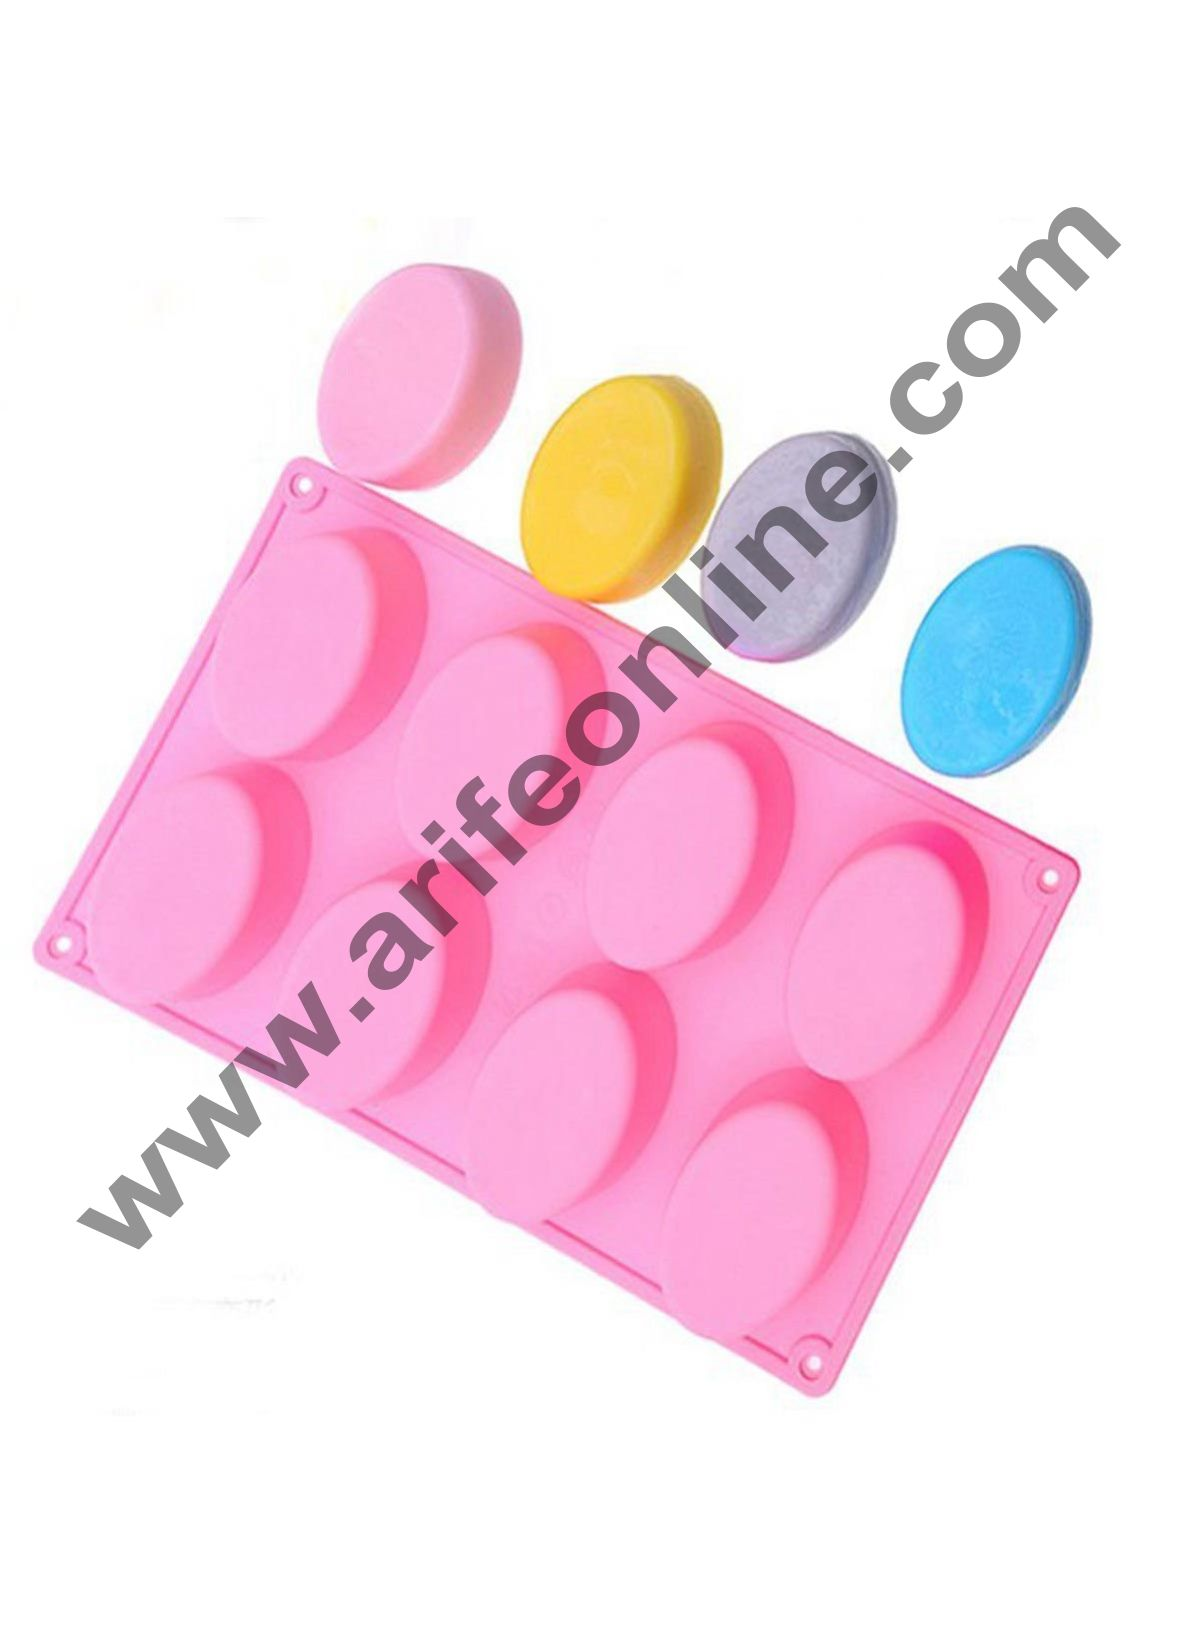 Cake Decor 8 Cavity Silicone Half Egg Shape easter moulds for Soaps Chocolate Jelly Desserts All Purpose Baking Mould (Soap Weight Approx: 70 Grams Per Cavity)